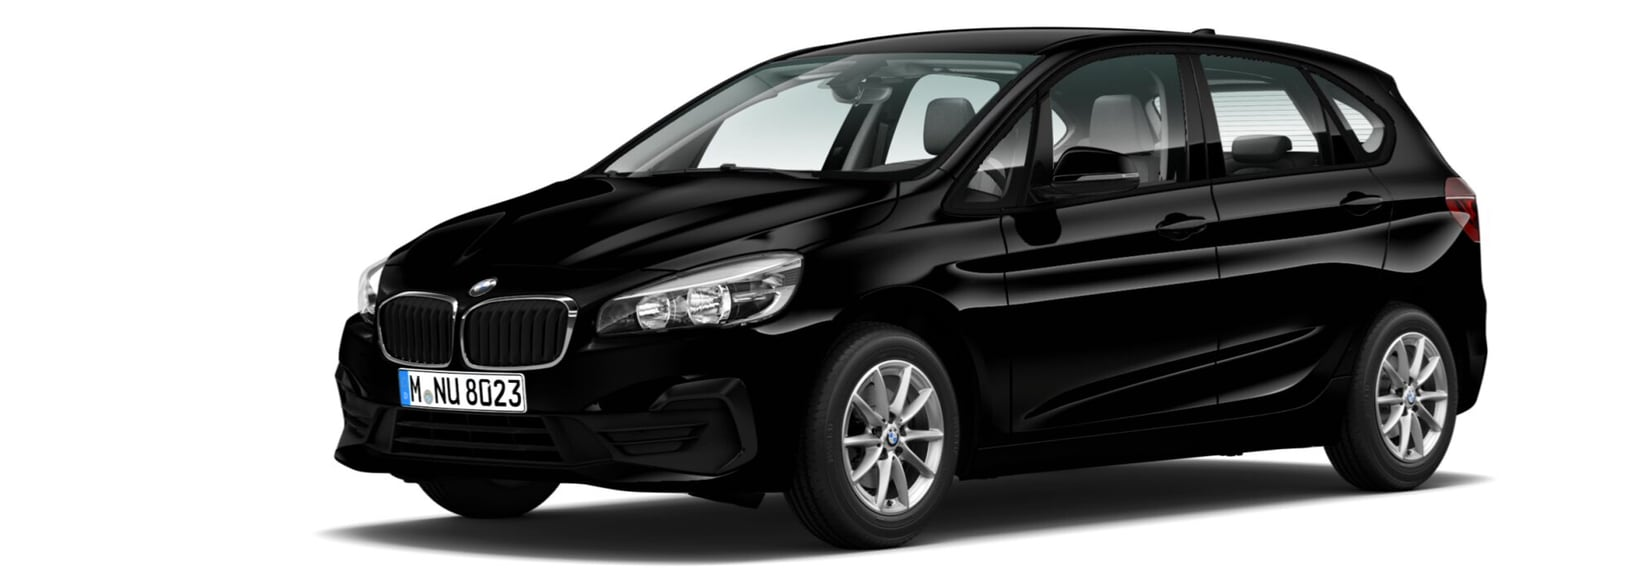 THE 2. BMW 2er Active Tourer. | BMW 216i Active Tourer, Schwarz uni, Stoff 'Grid' Anthrazit